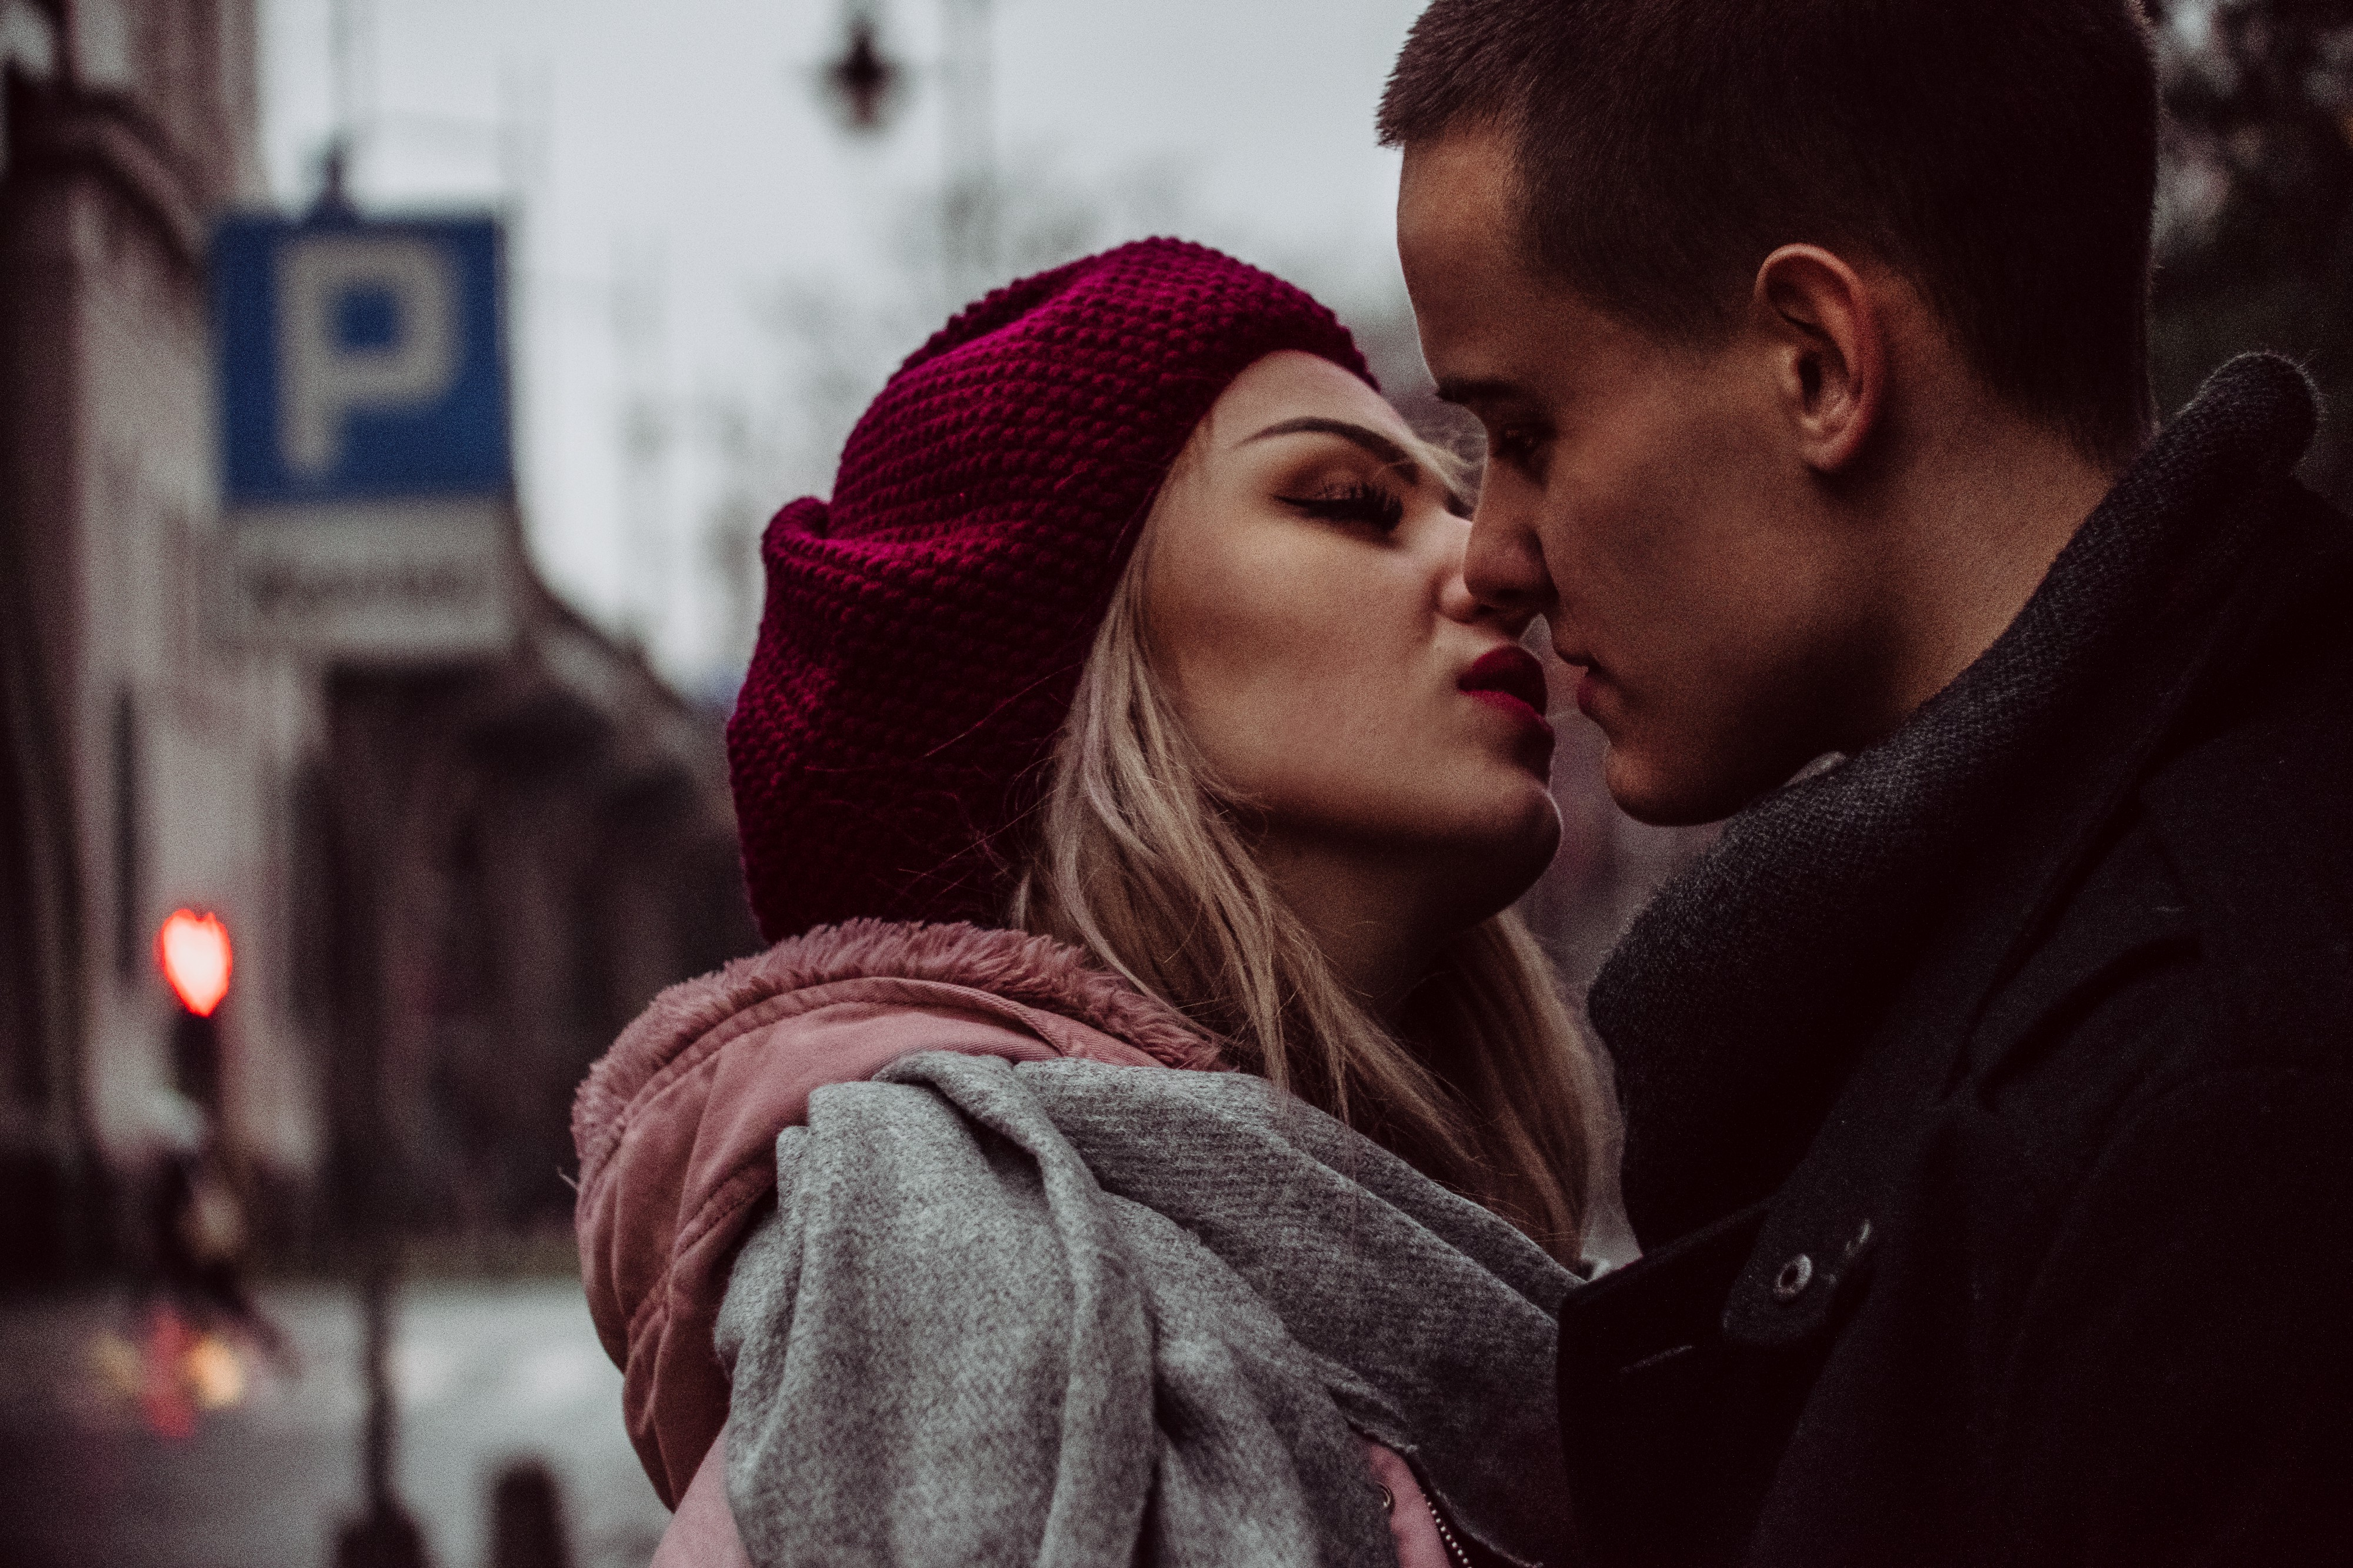 The Most Important Values Of Any Healthy Relationship